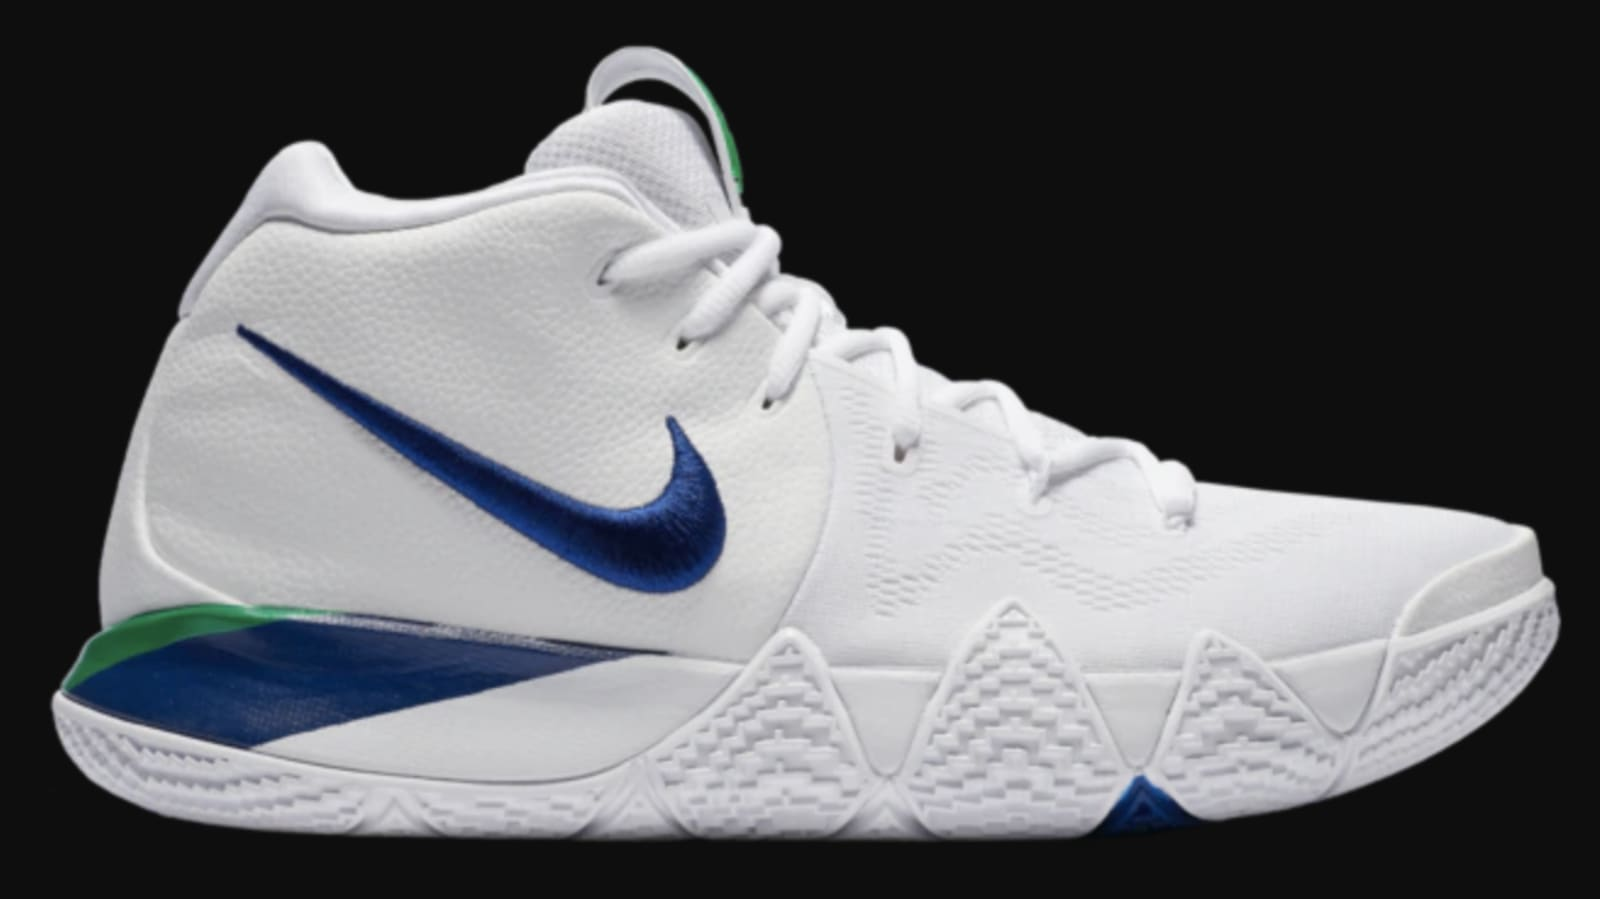 best authentic 33749 fe8e4 Nike Kyrie 4 - Sneaker Sales November 2, 2018 | Sole Collector